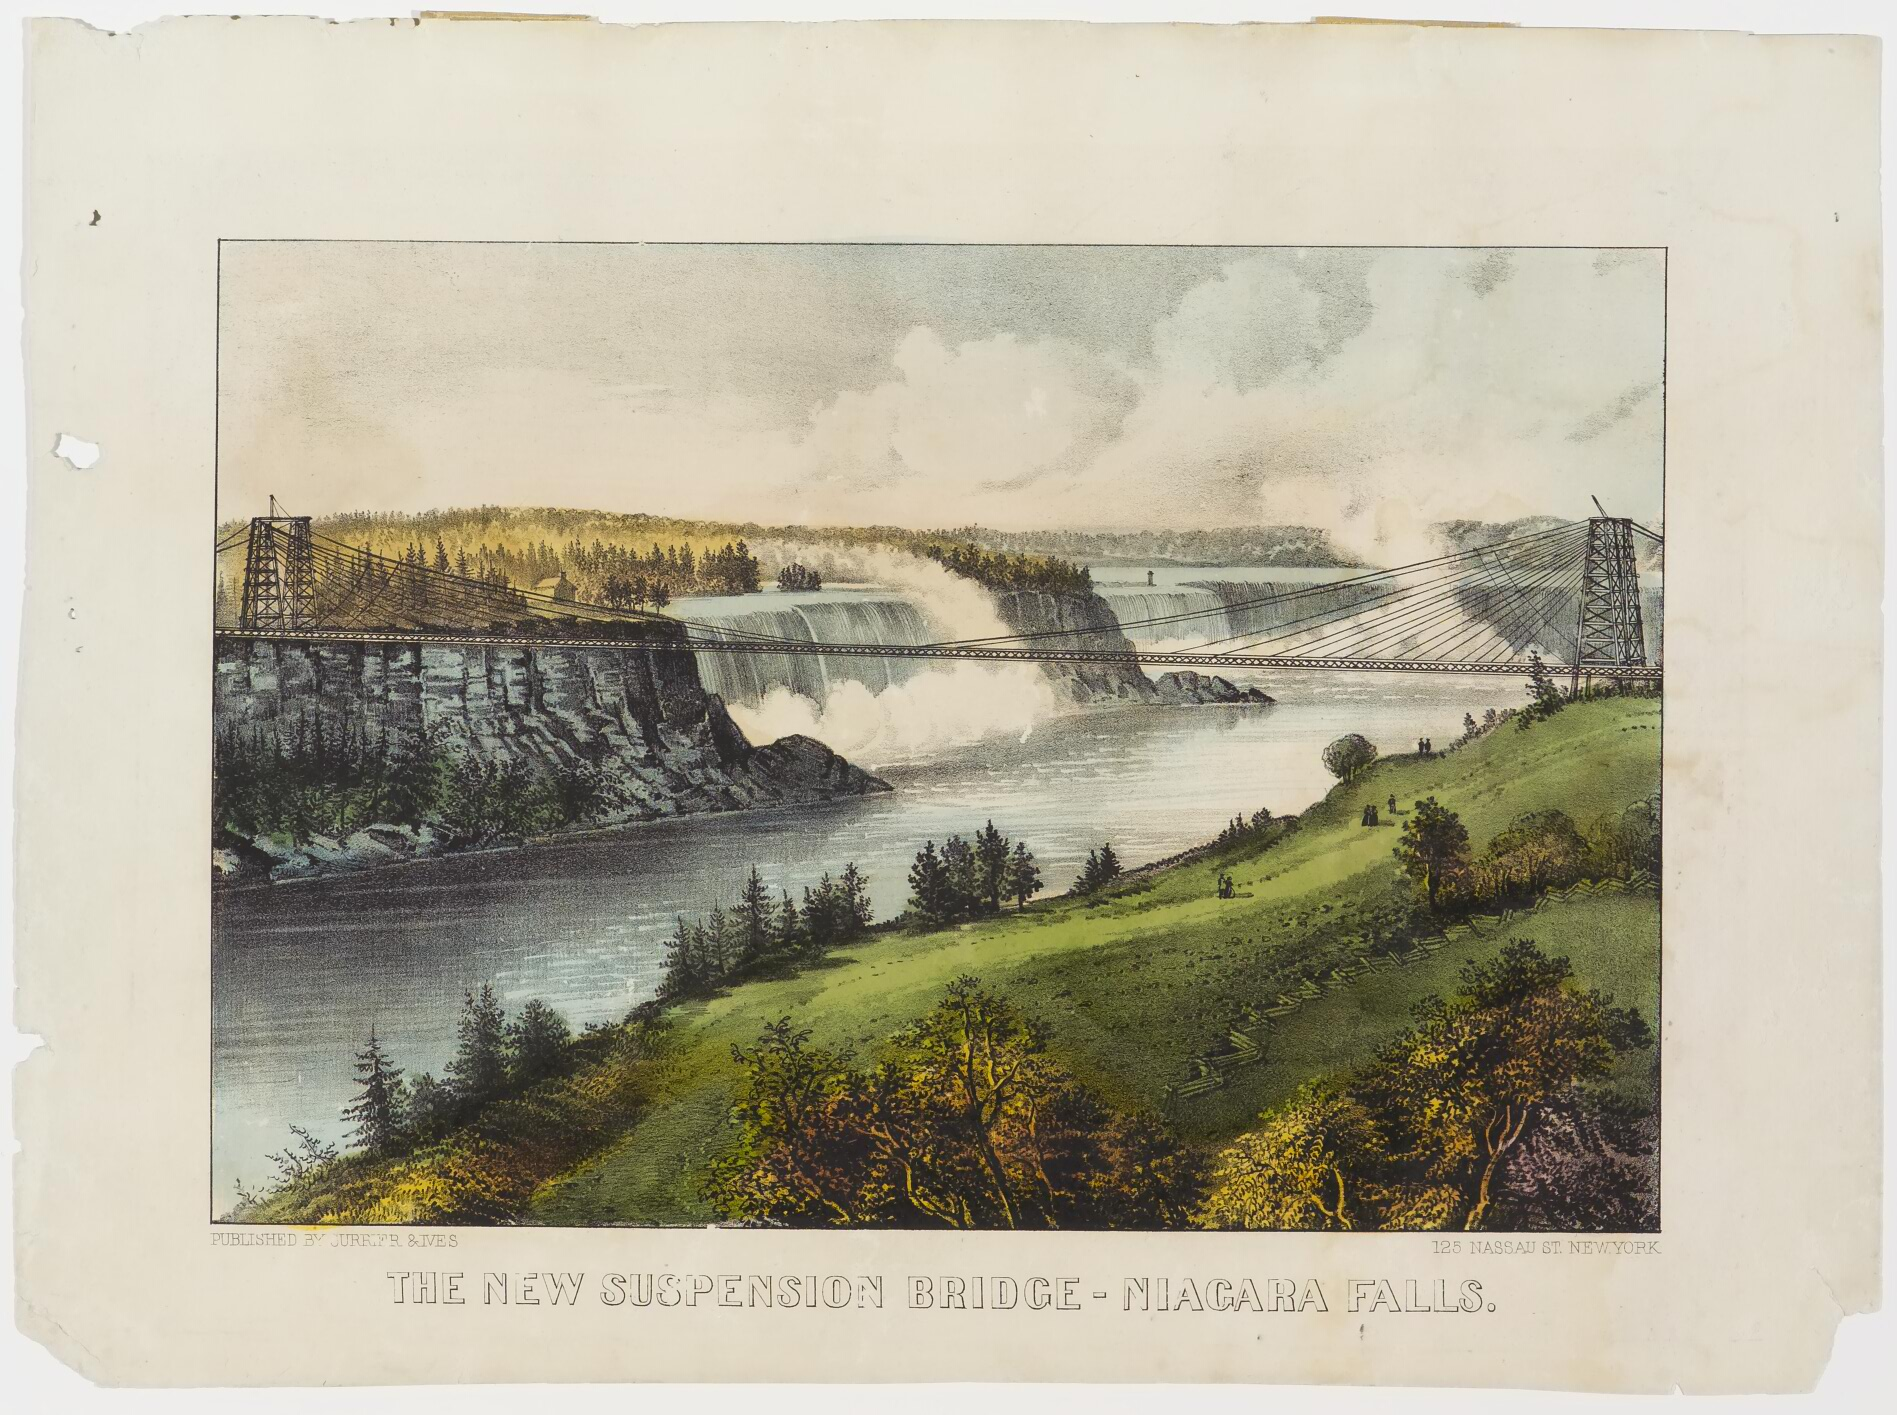 Falls in background; bridge crossing from cliffs on left to grasslands on right